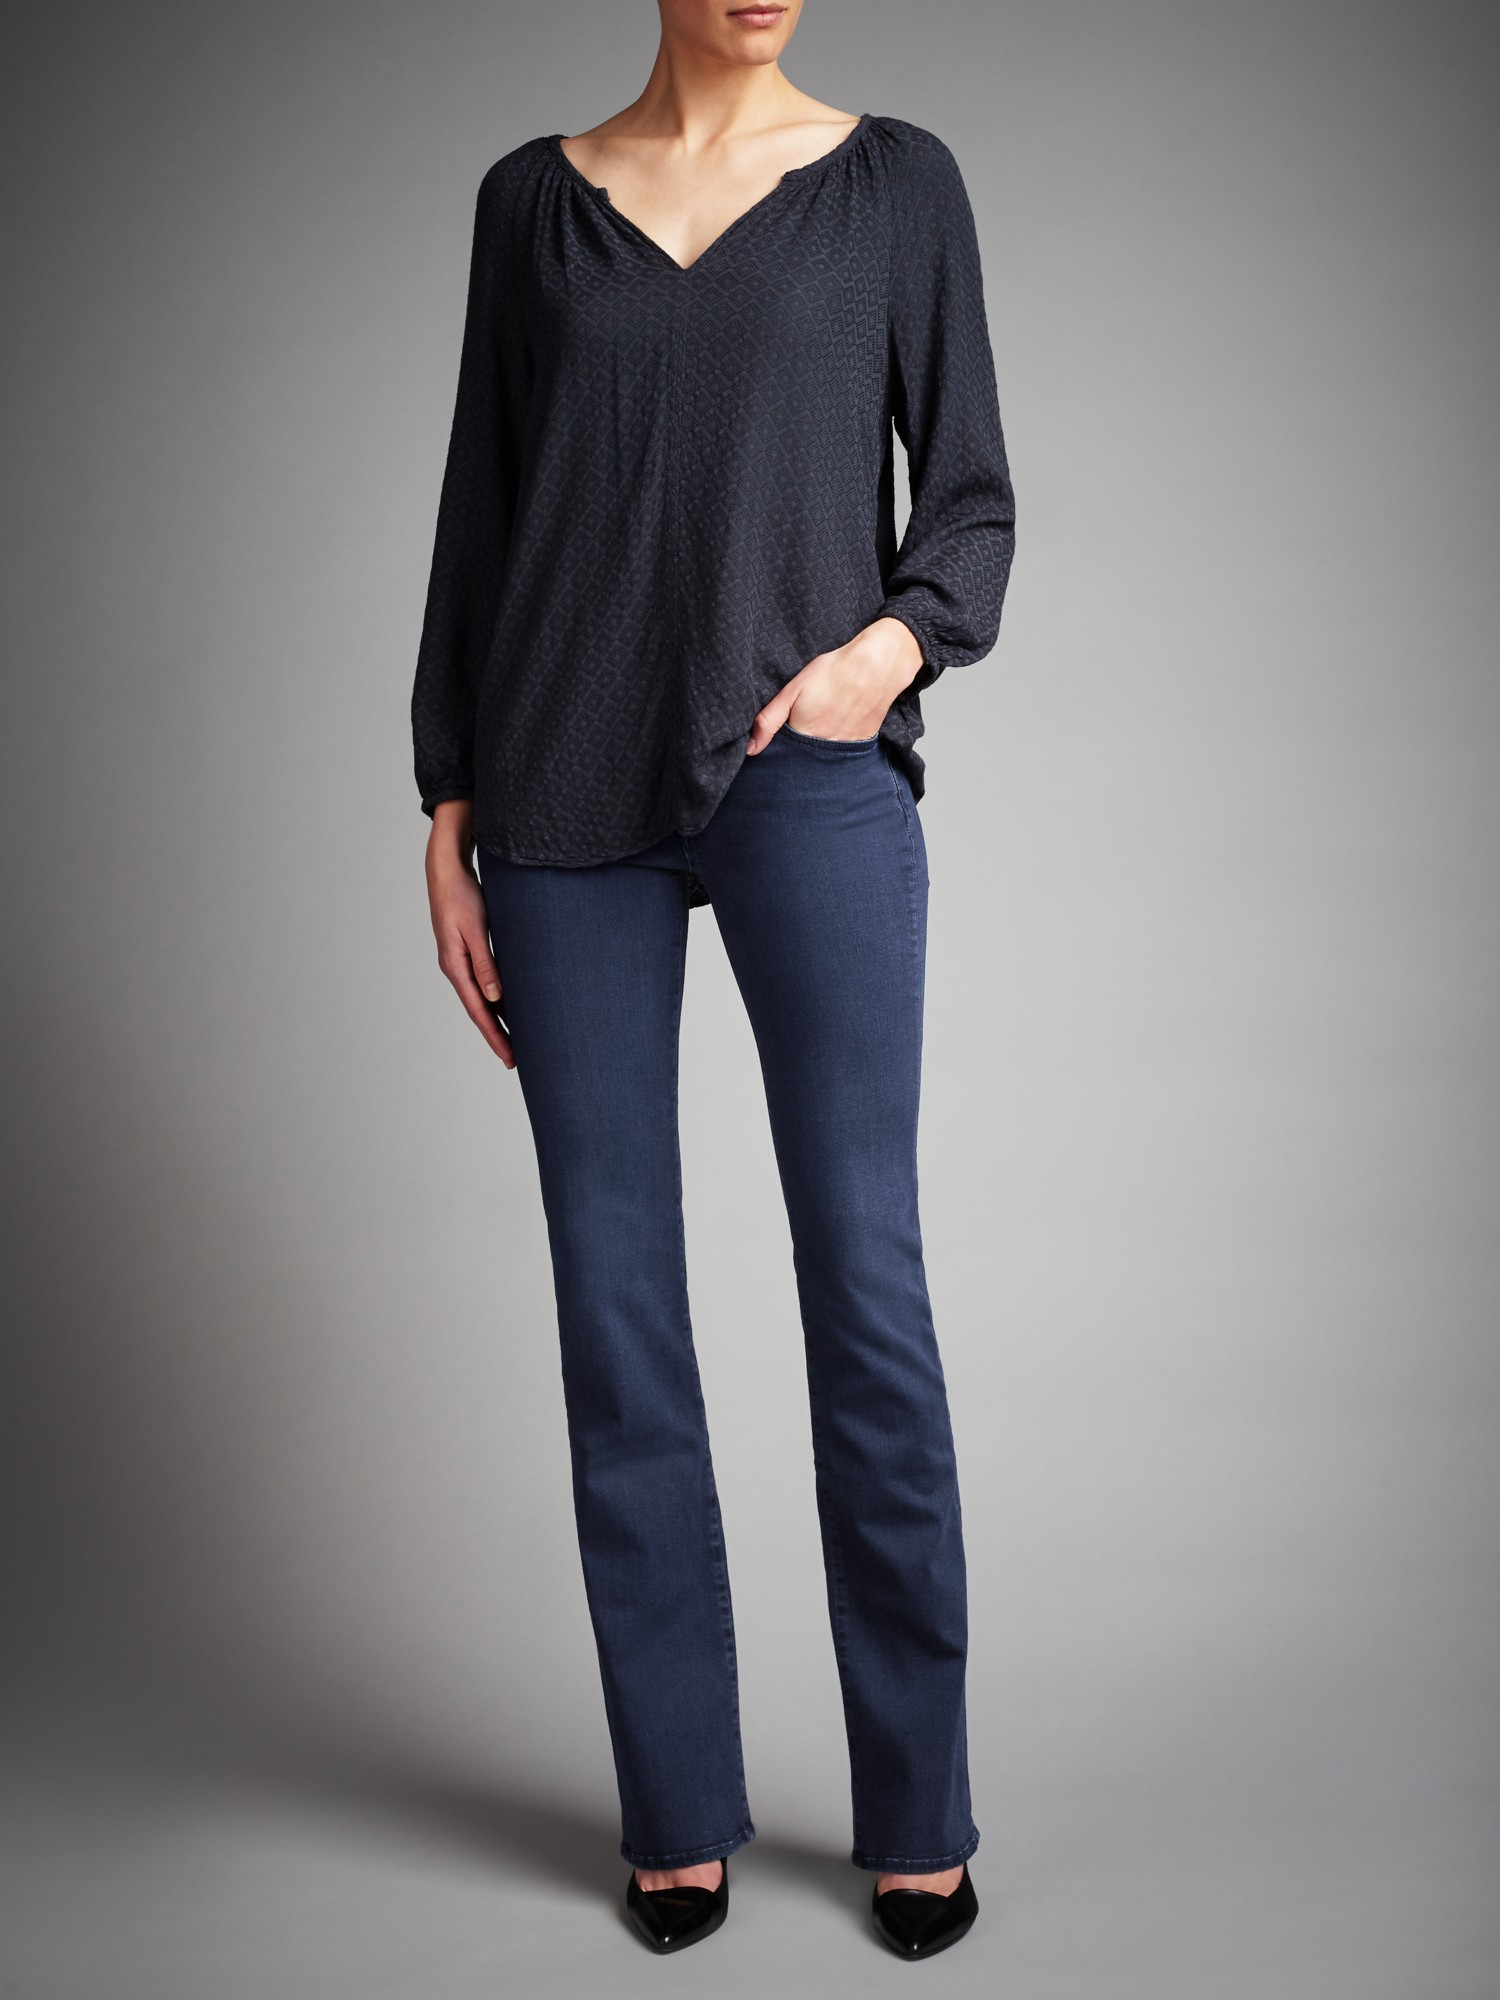 7 For All Mankind Denim Skinny Bootcut Jeans in Blue